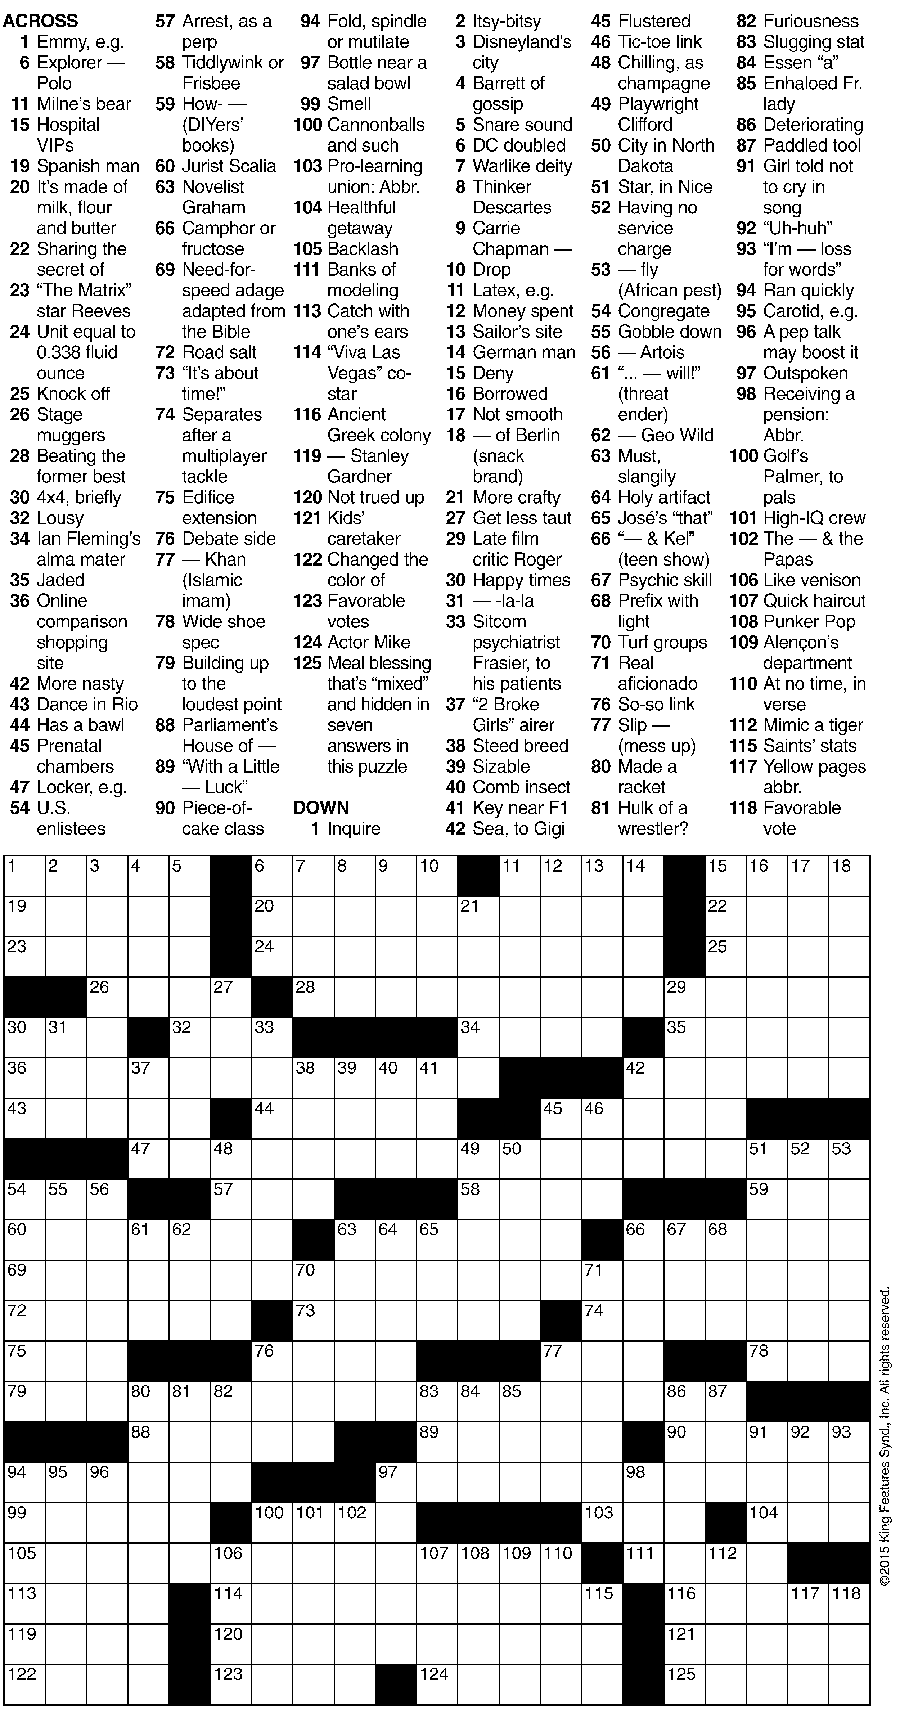 crossword_answer.png